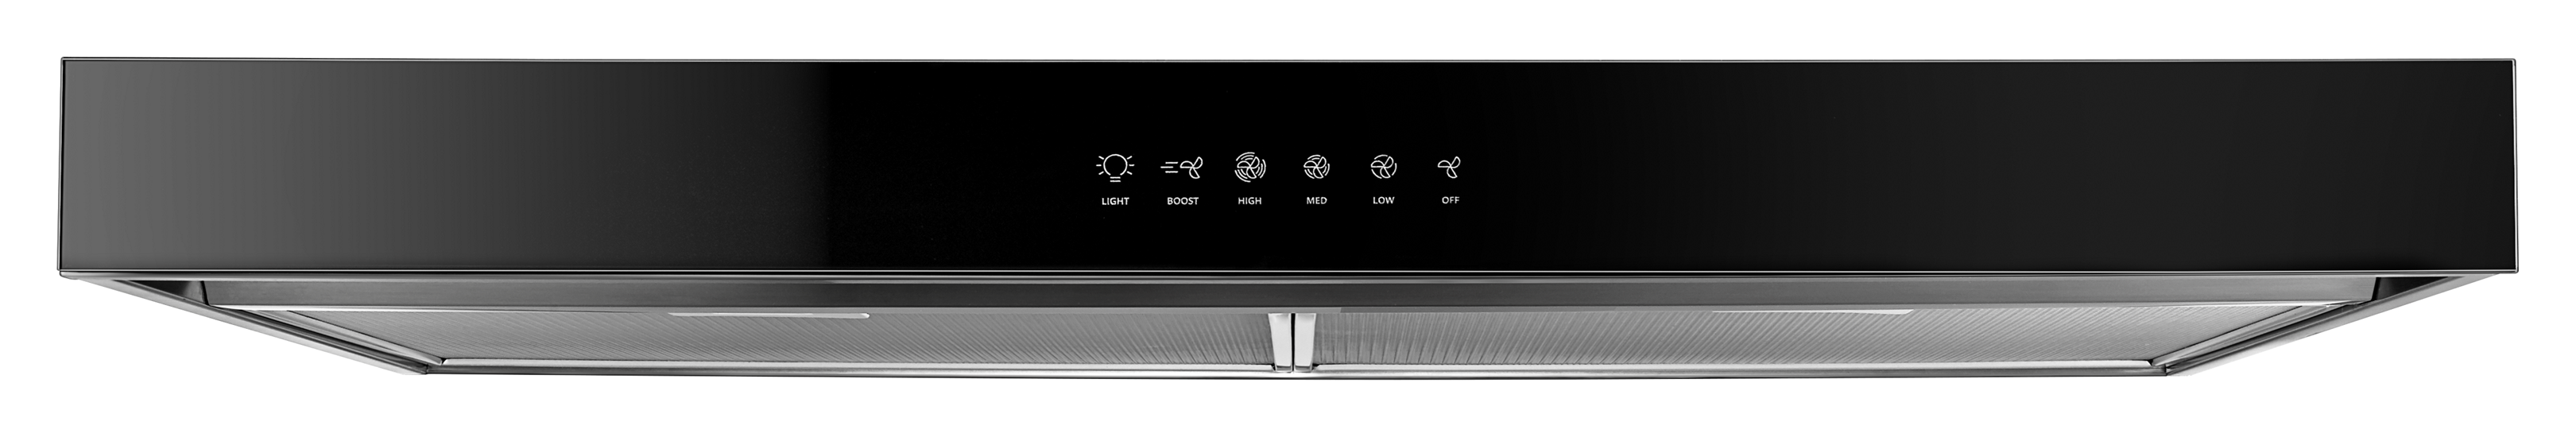 30 Quot Range Hood With Boost Function Whirlpool